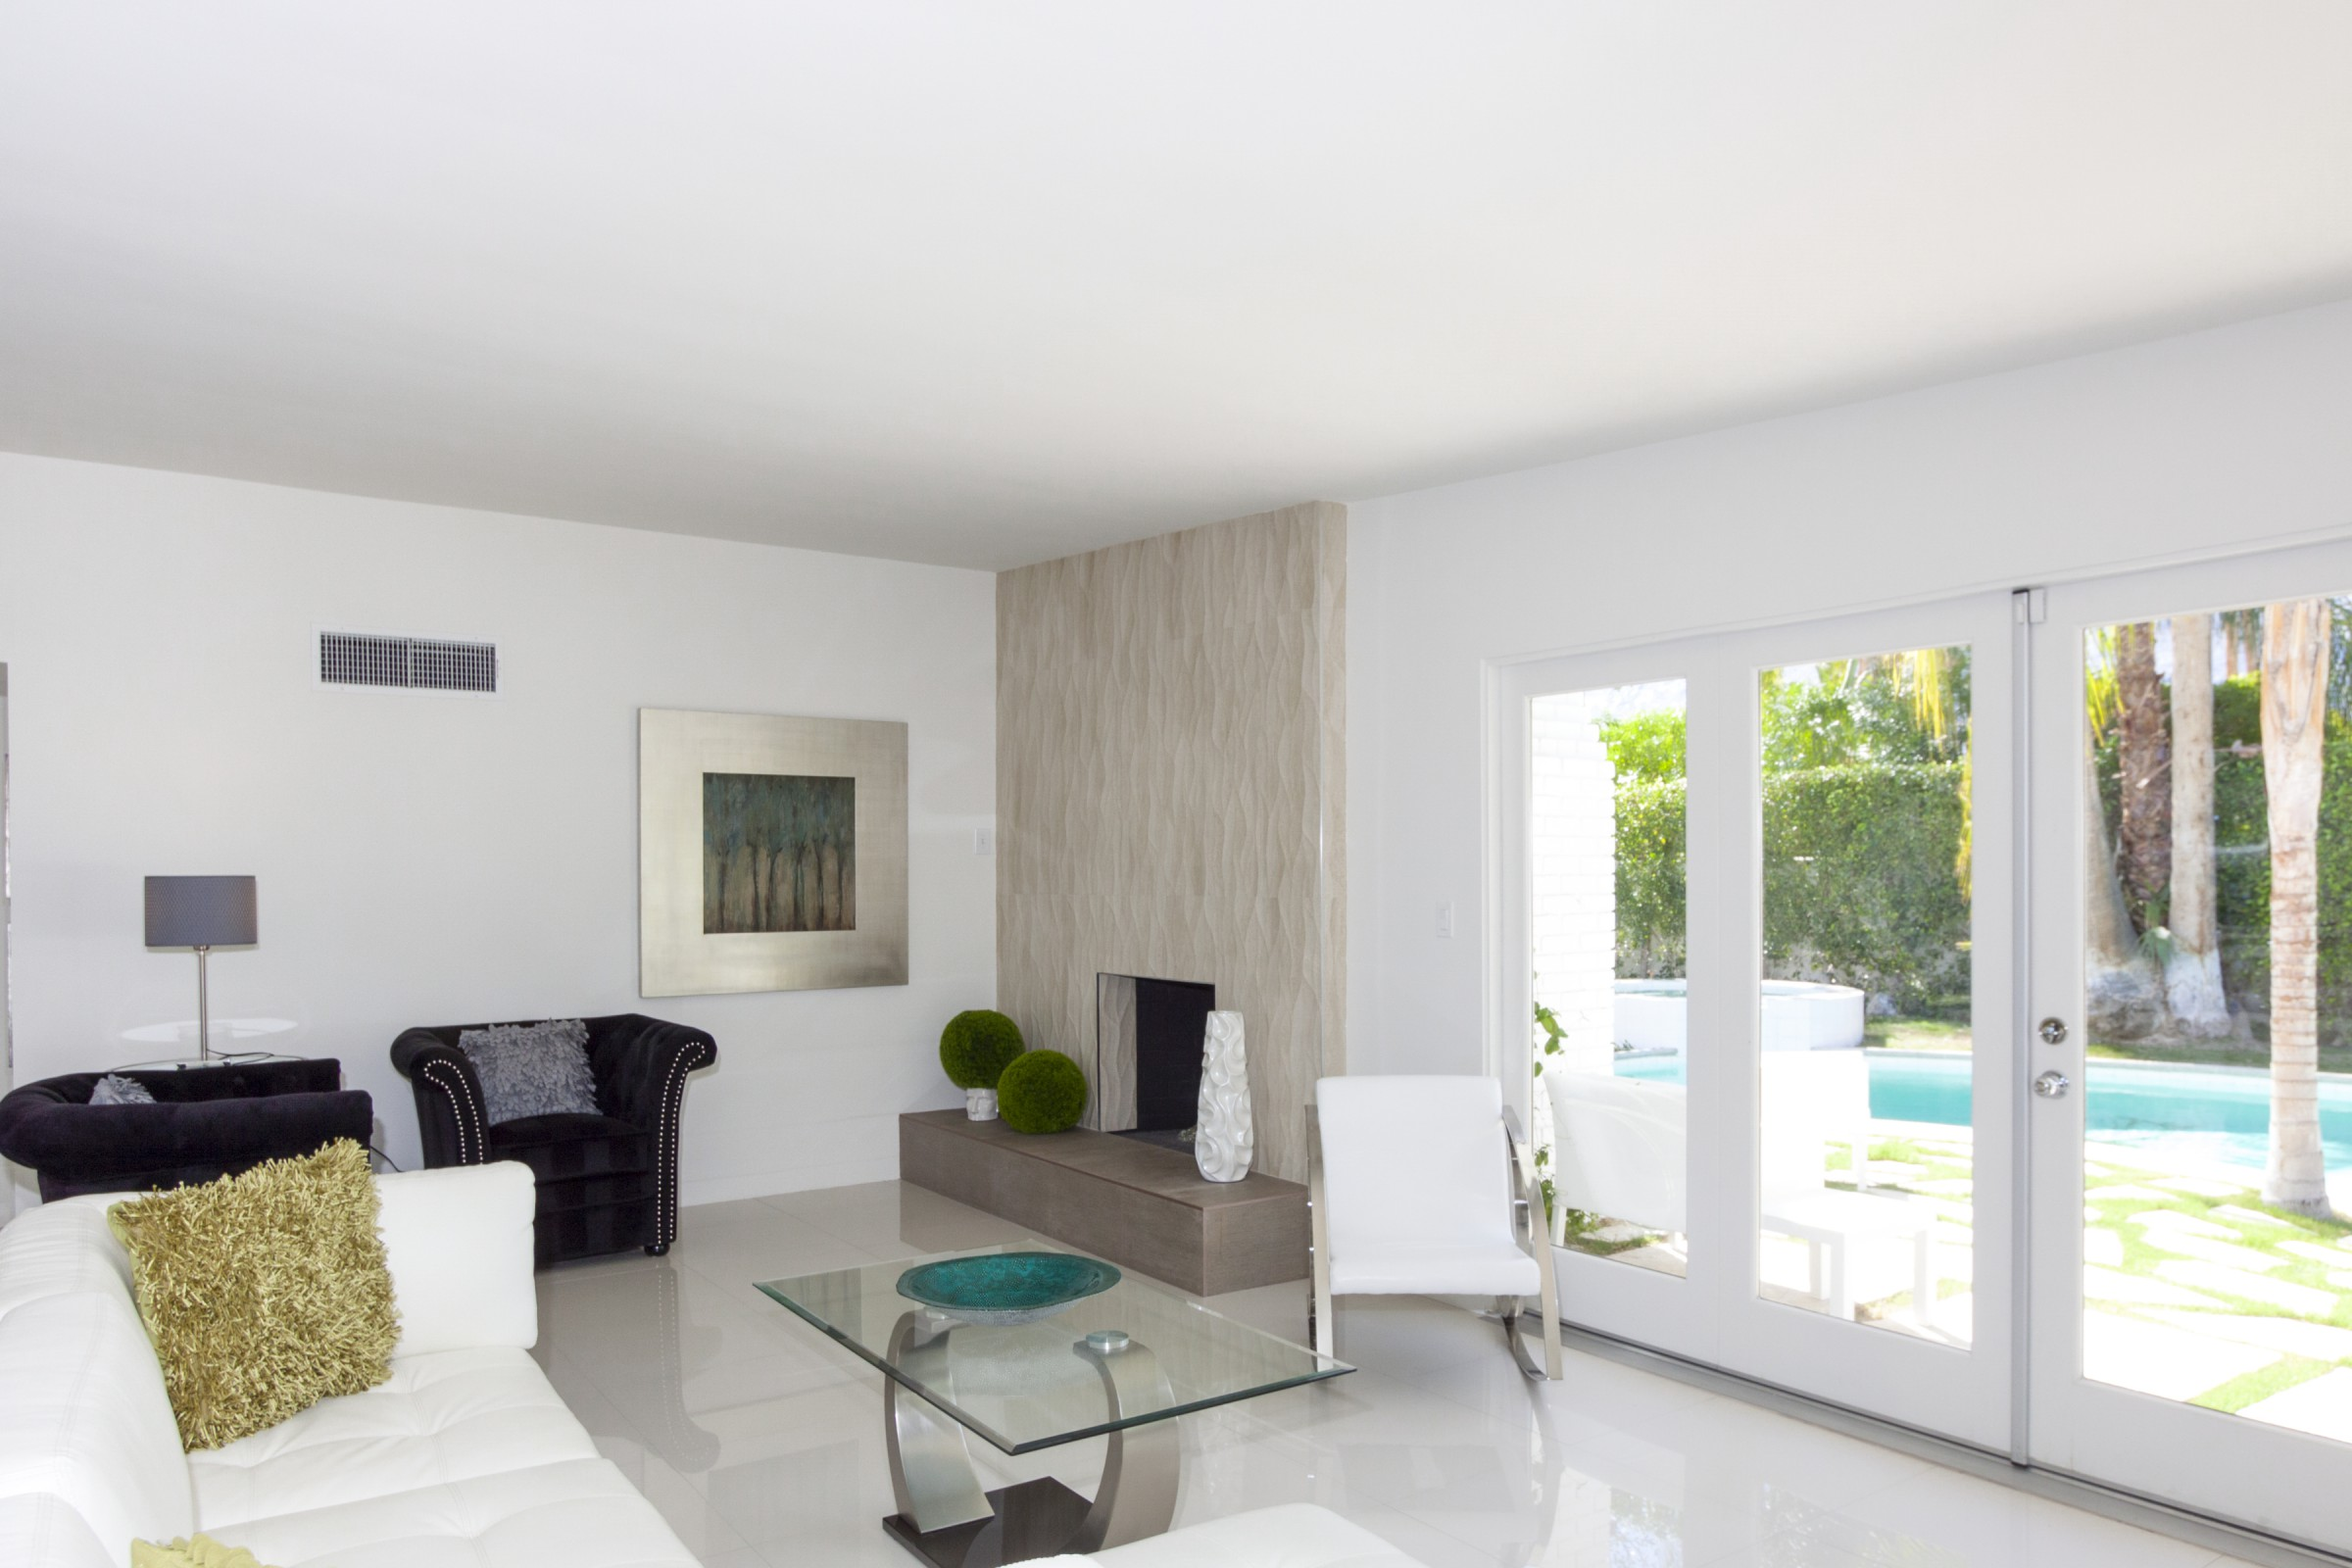 4BR/3BA Ultra-modern Palm Springs House with Pool ~ RA88329 | RedAwning